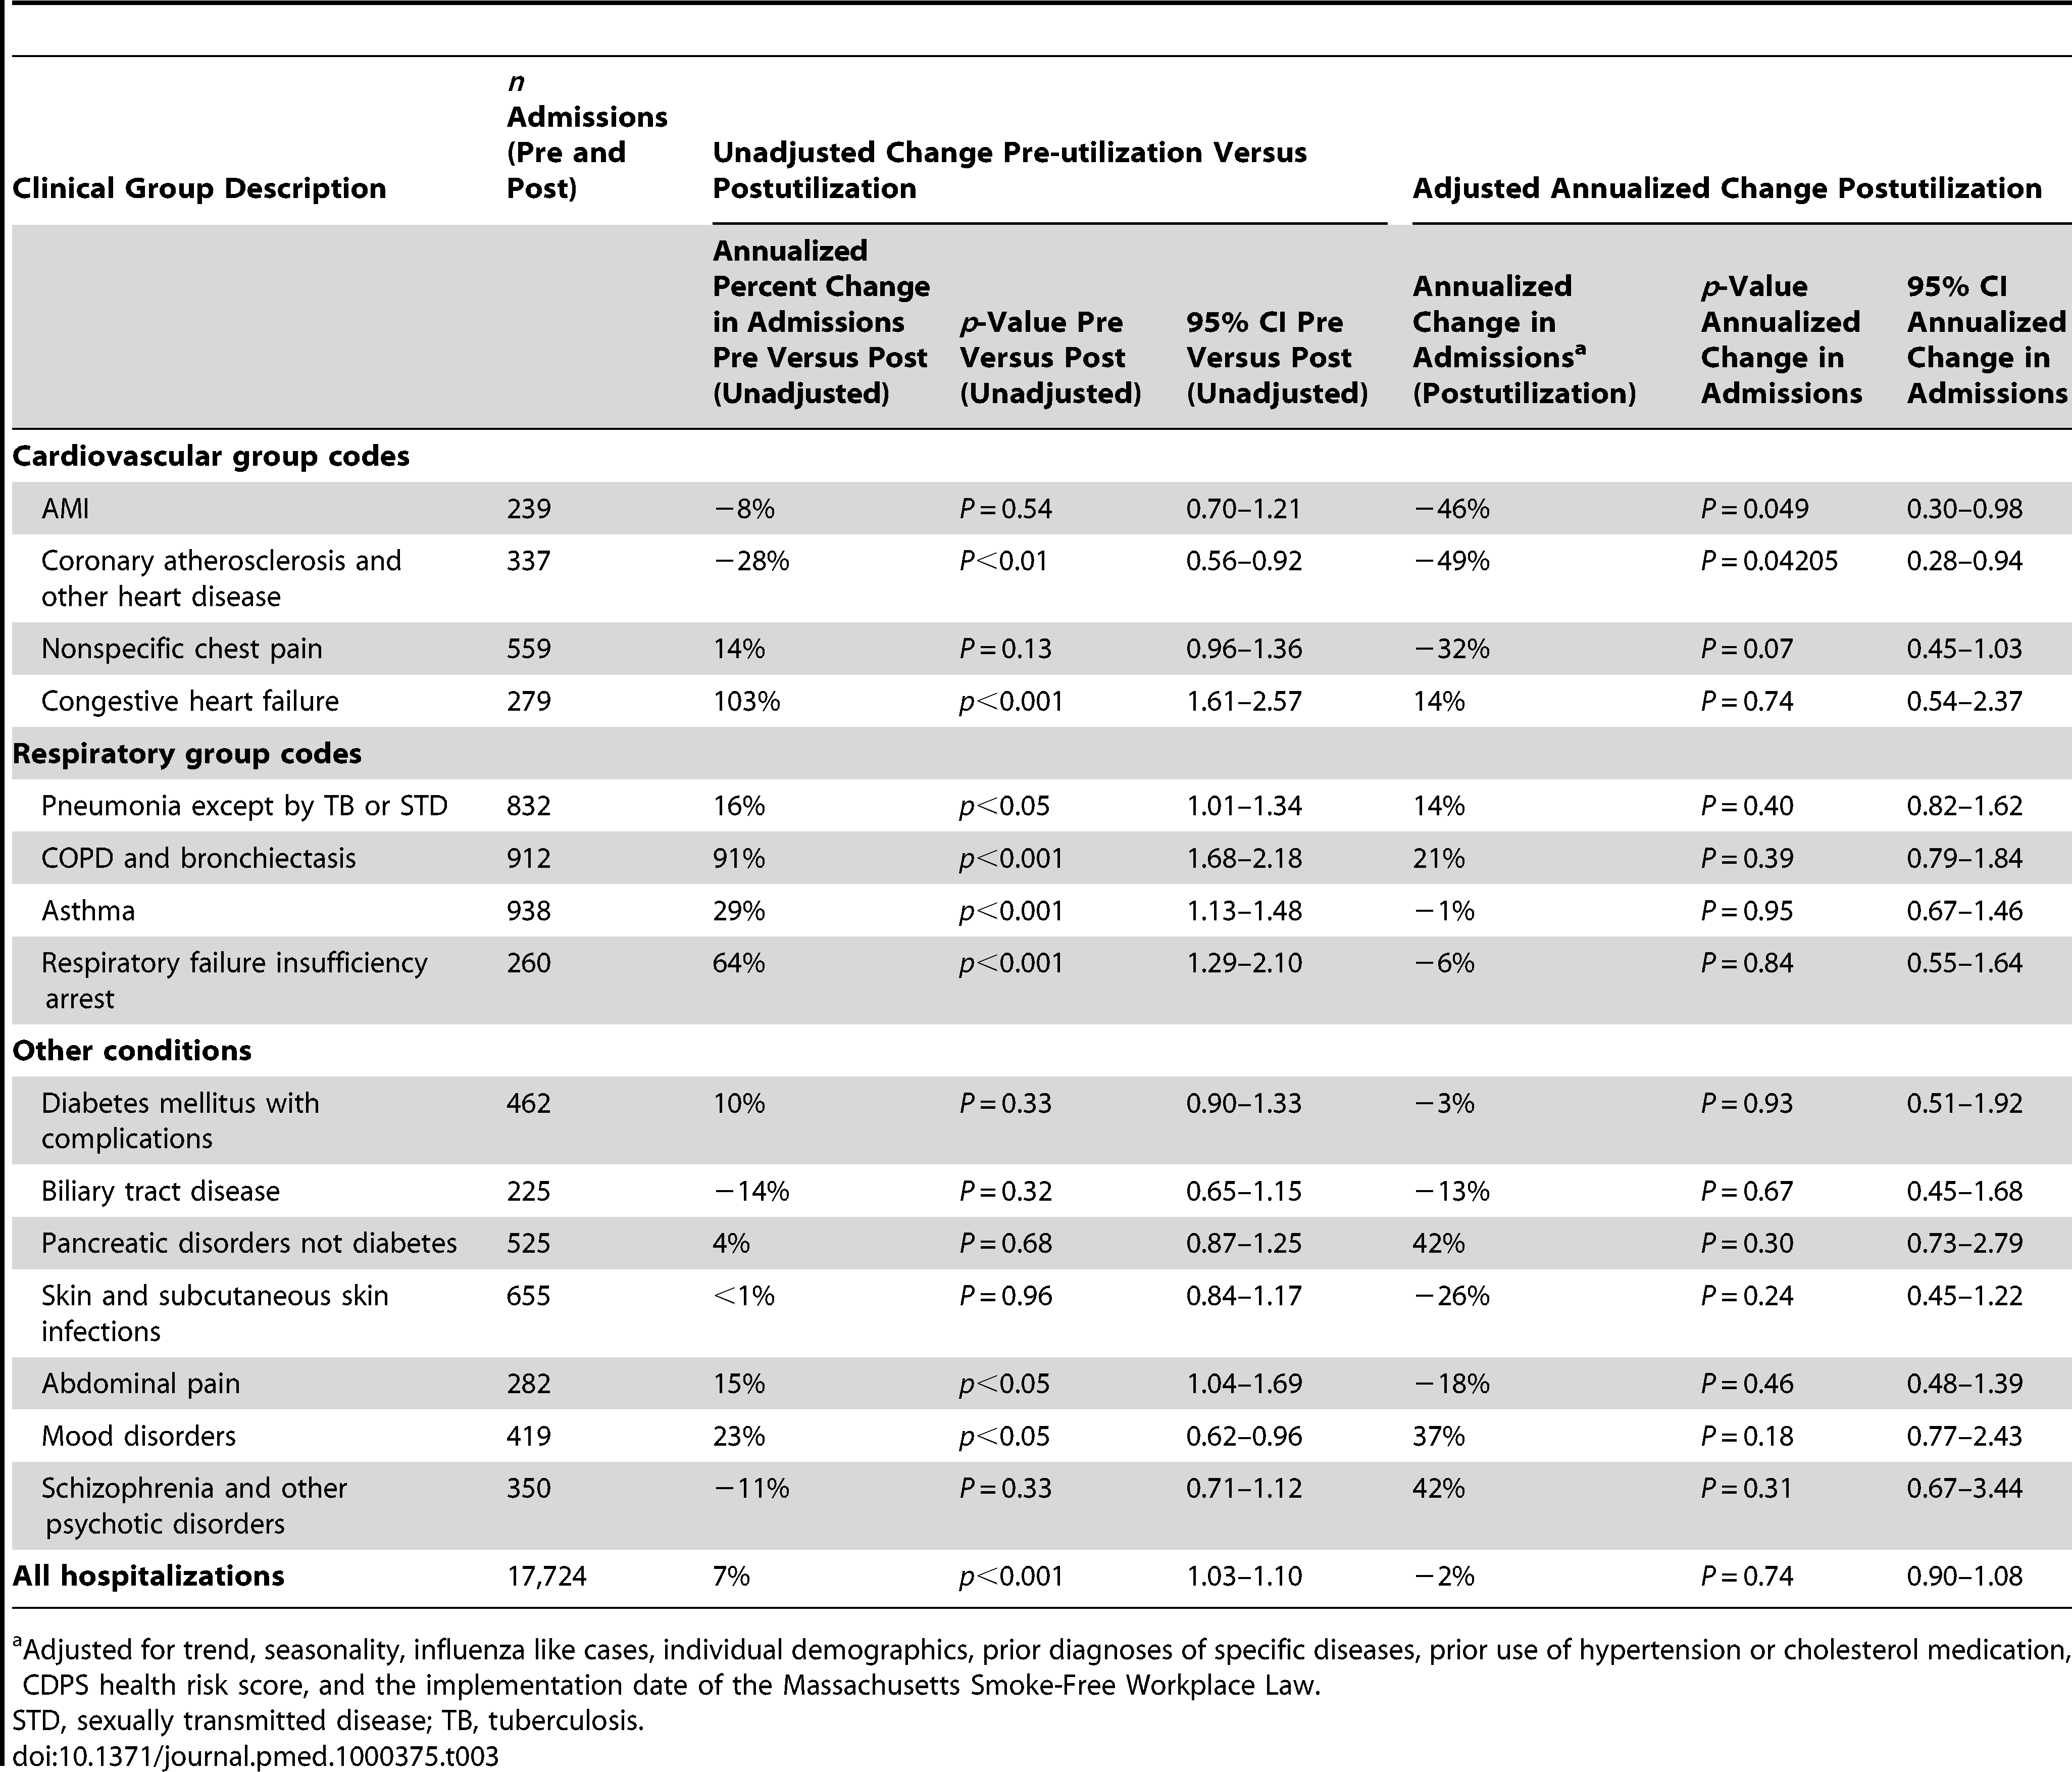 Number of admissions by group, unadjusted change in hospital admissions in pre-utilization period compared to postutilization period with <i>p</i>-value and 95% CI, annualized change in inpatient hospital admissions postutilization with <i>p</i>-value and 95% CI.